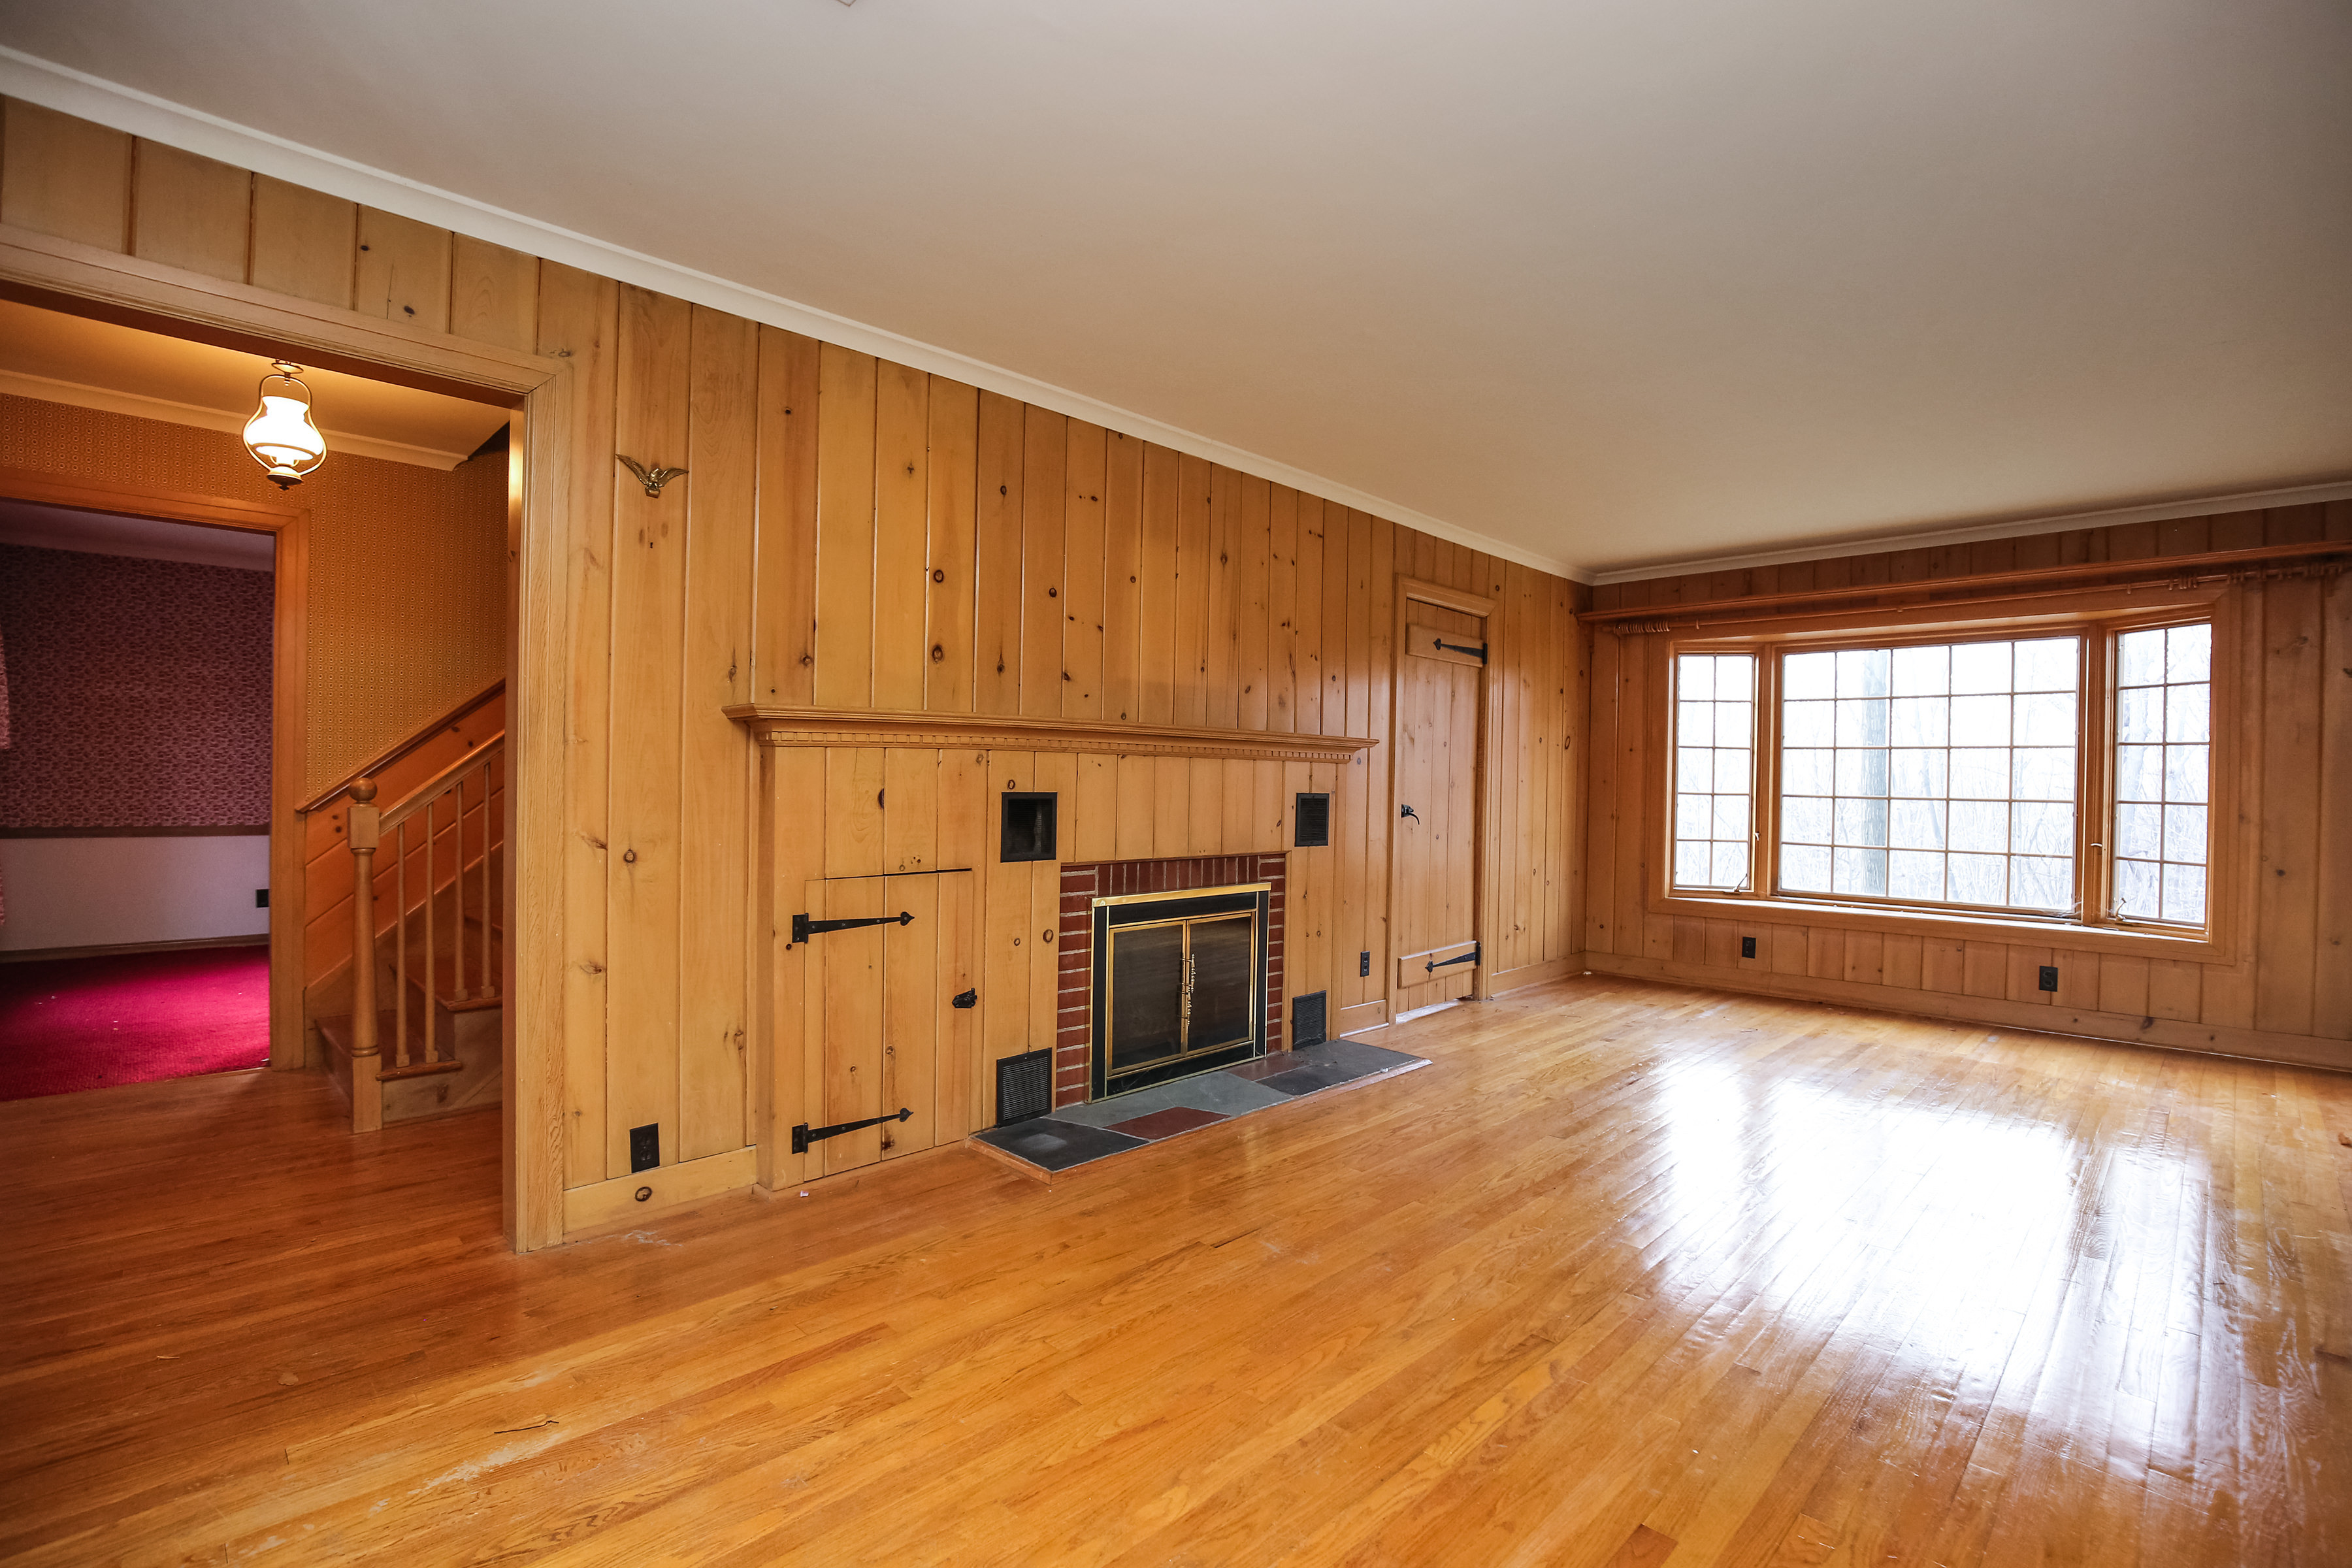 hardwood flooring westfield nj of 37 ridge rd roseland nj 07068 sue adler realtor pertaining to 37 ridge rd roseland nj 07068